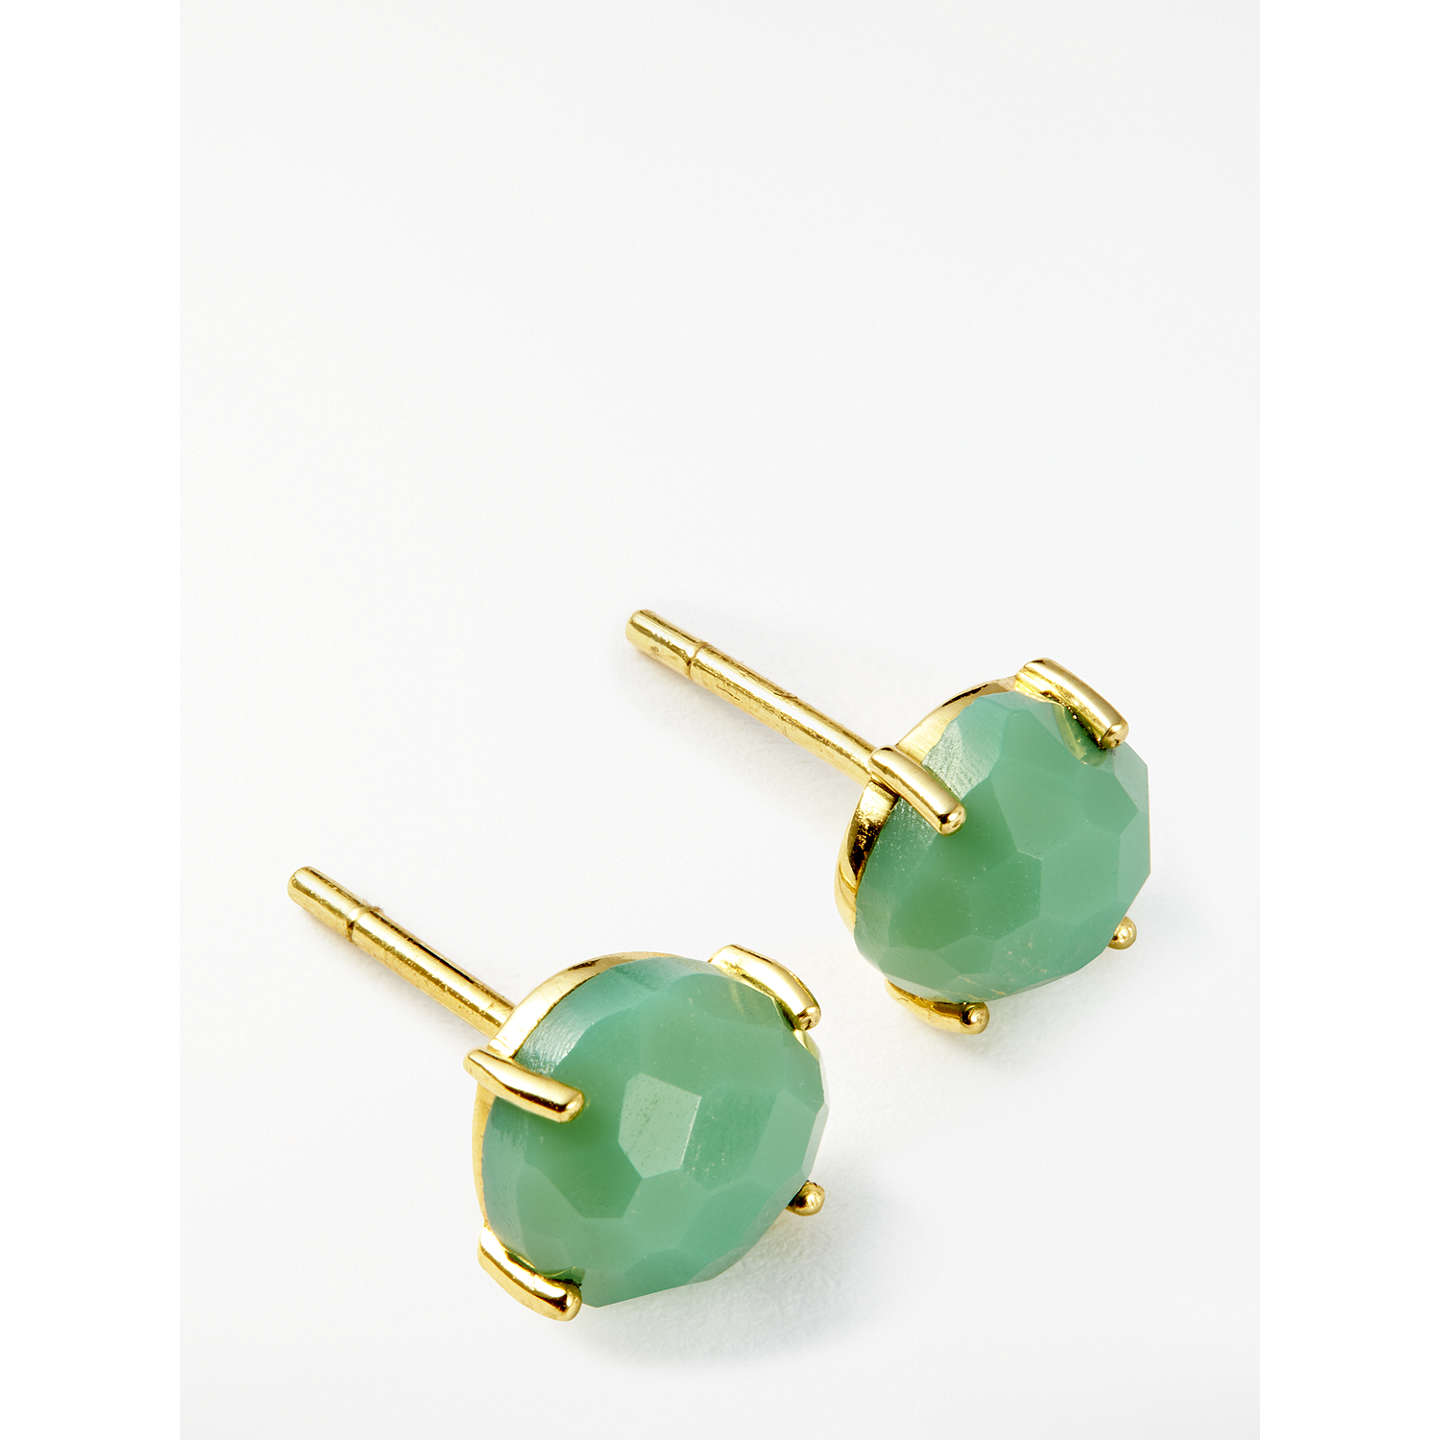 dotoly rose img small button plus original gold thumbnail stud round products in earrings online